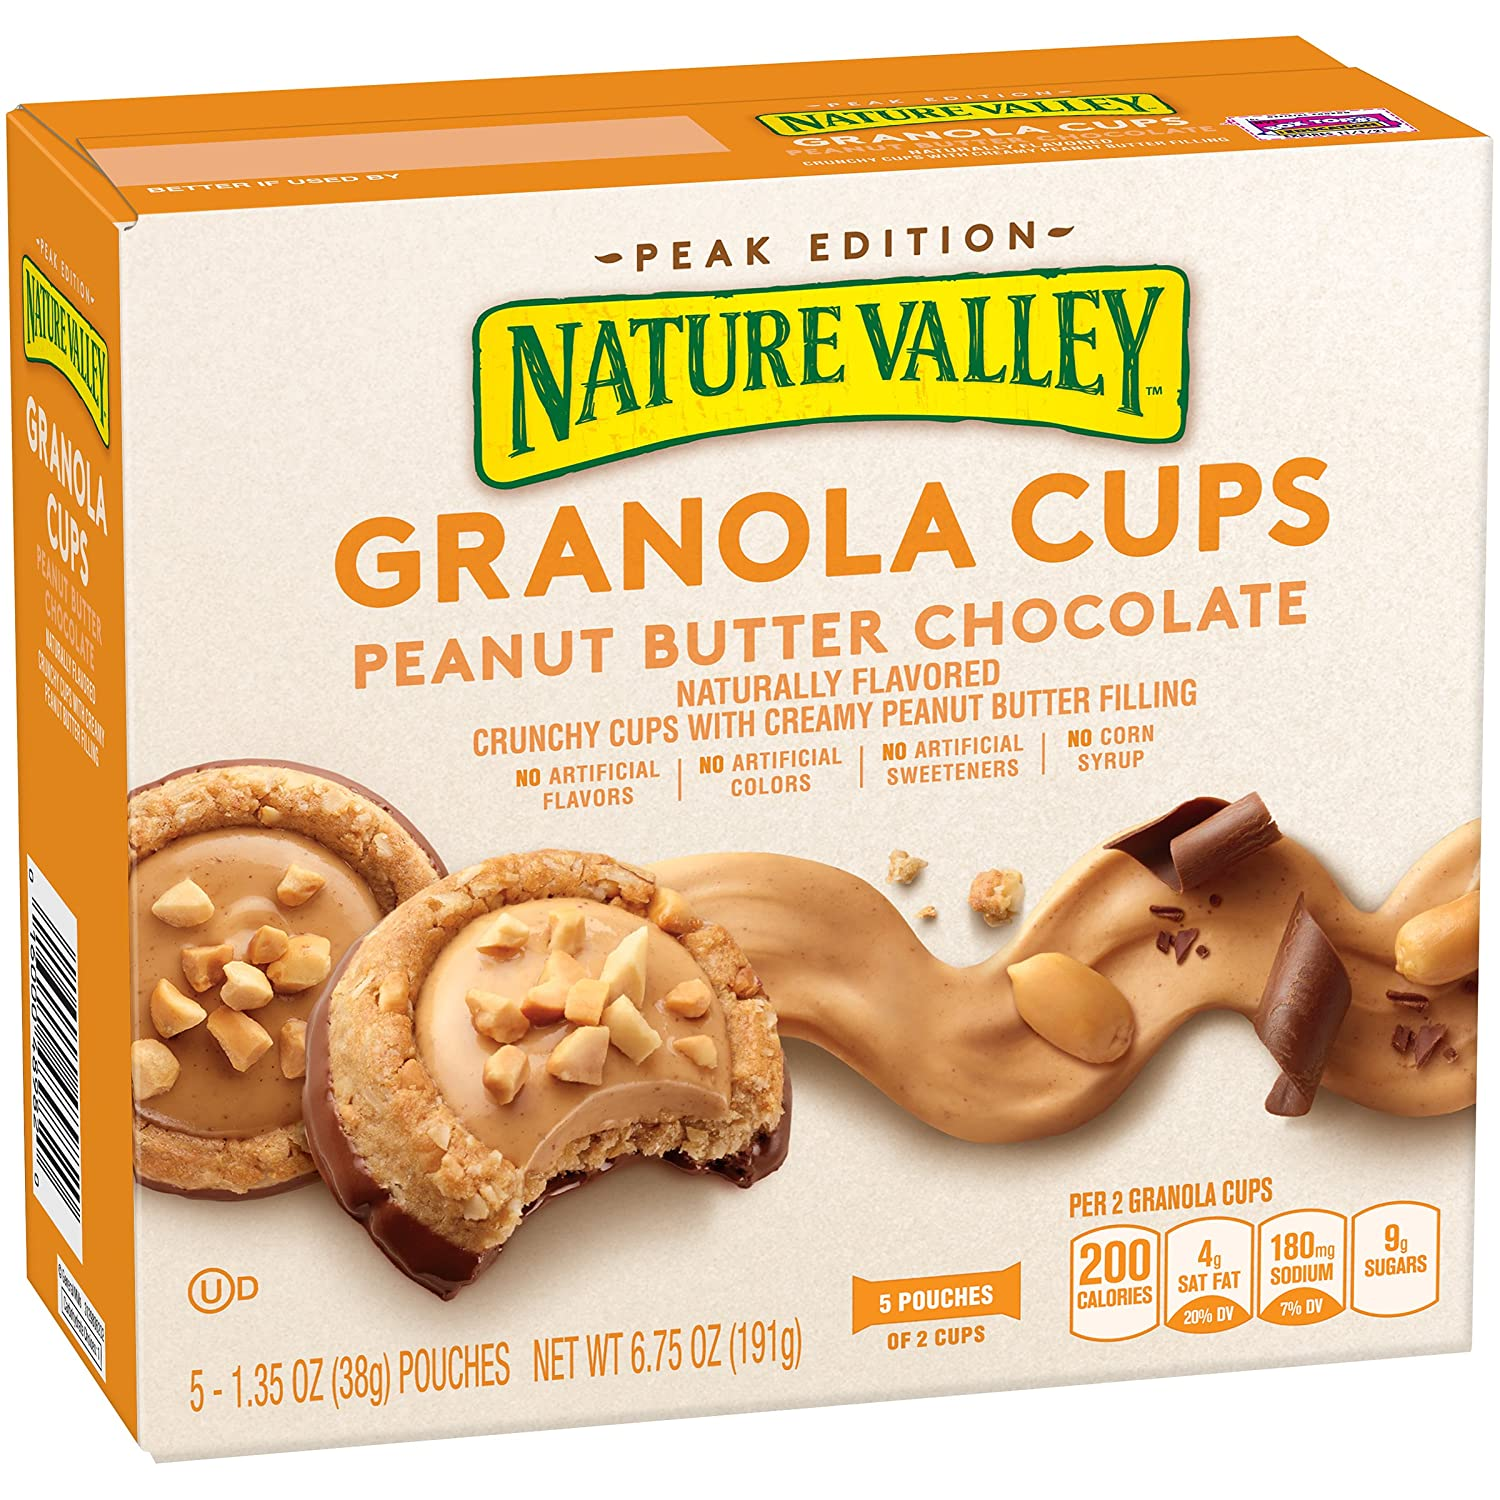 Nature Valley Peak Edition Granola Cups, Peanut Butter, 5 Pouches   1.35 Oz by Nature Valley